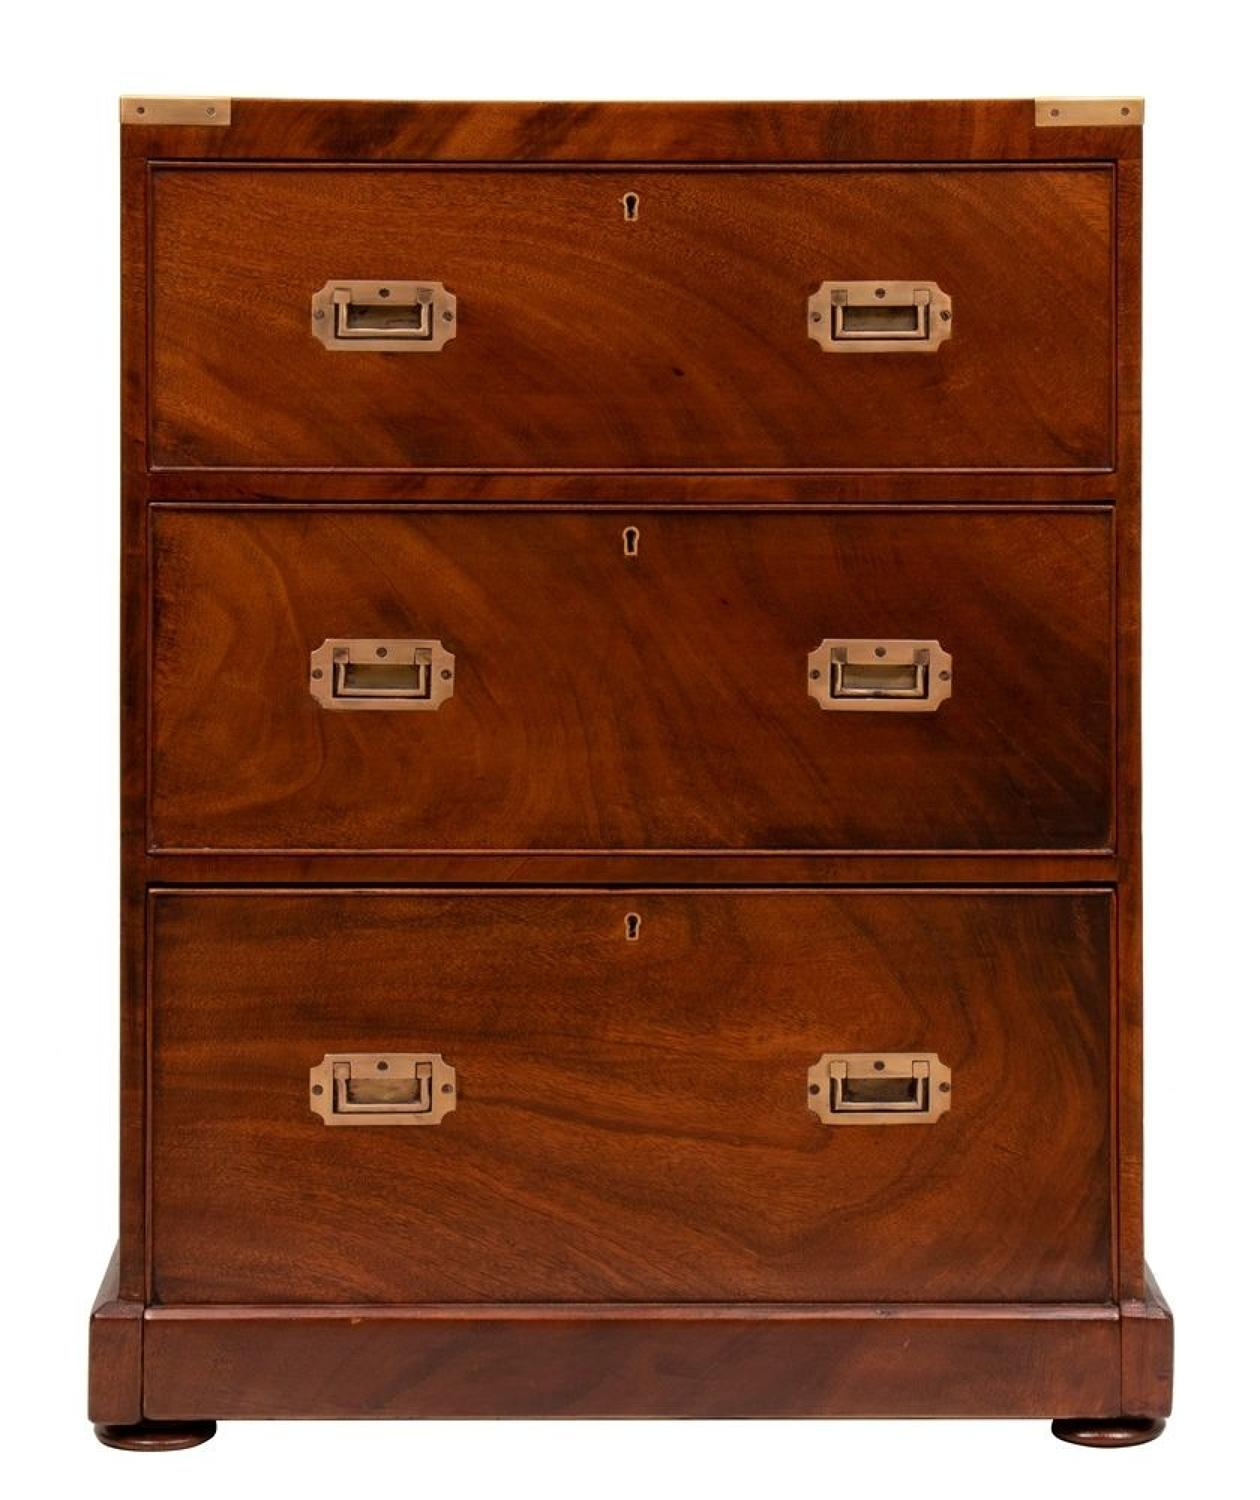 Military Bank of Drawers c.1900